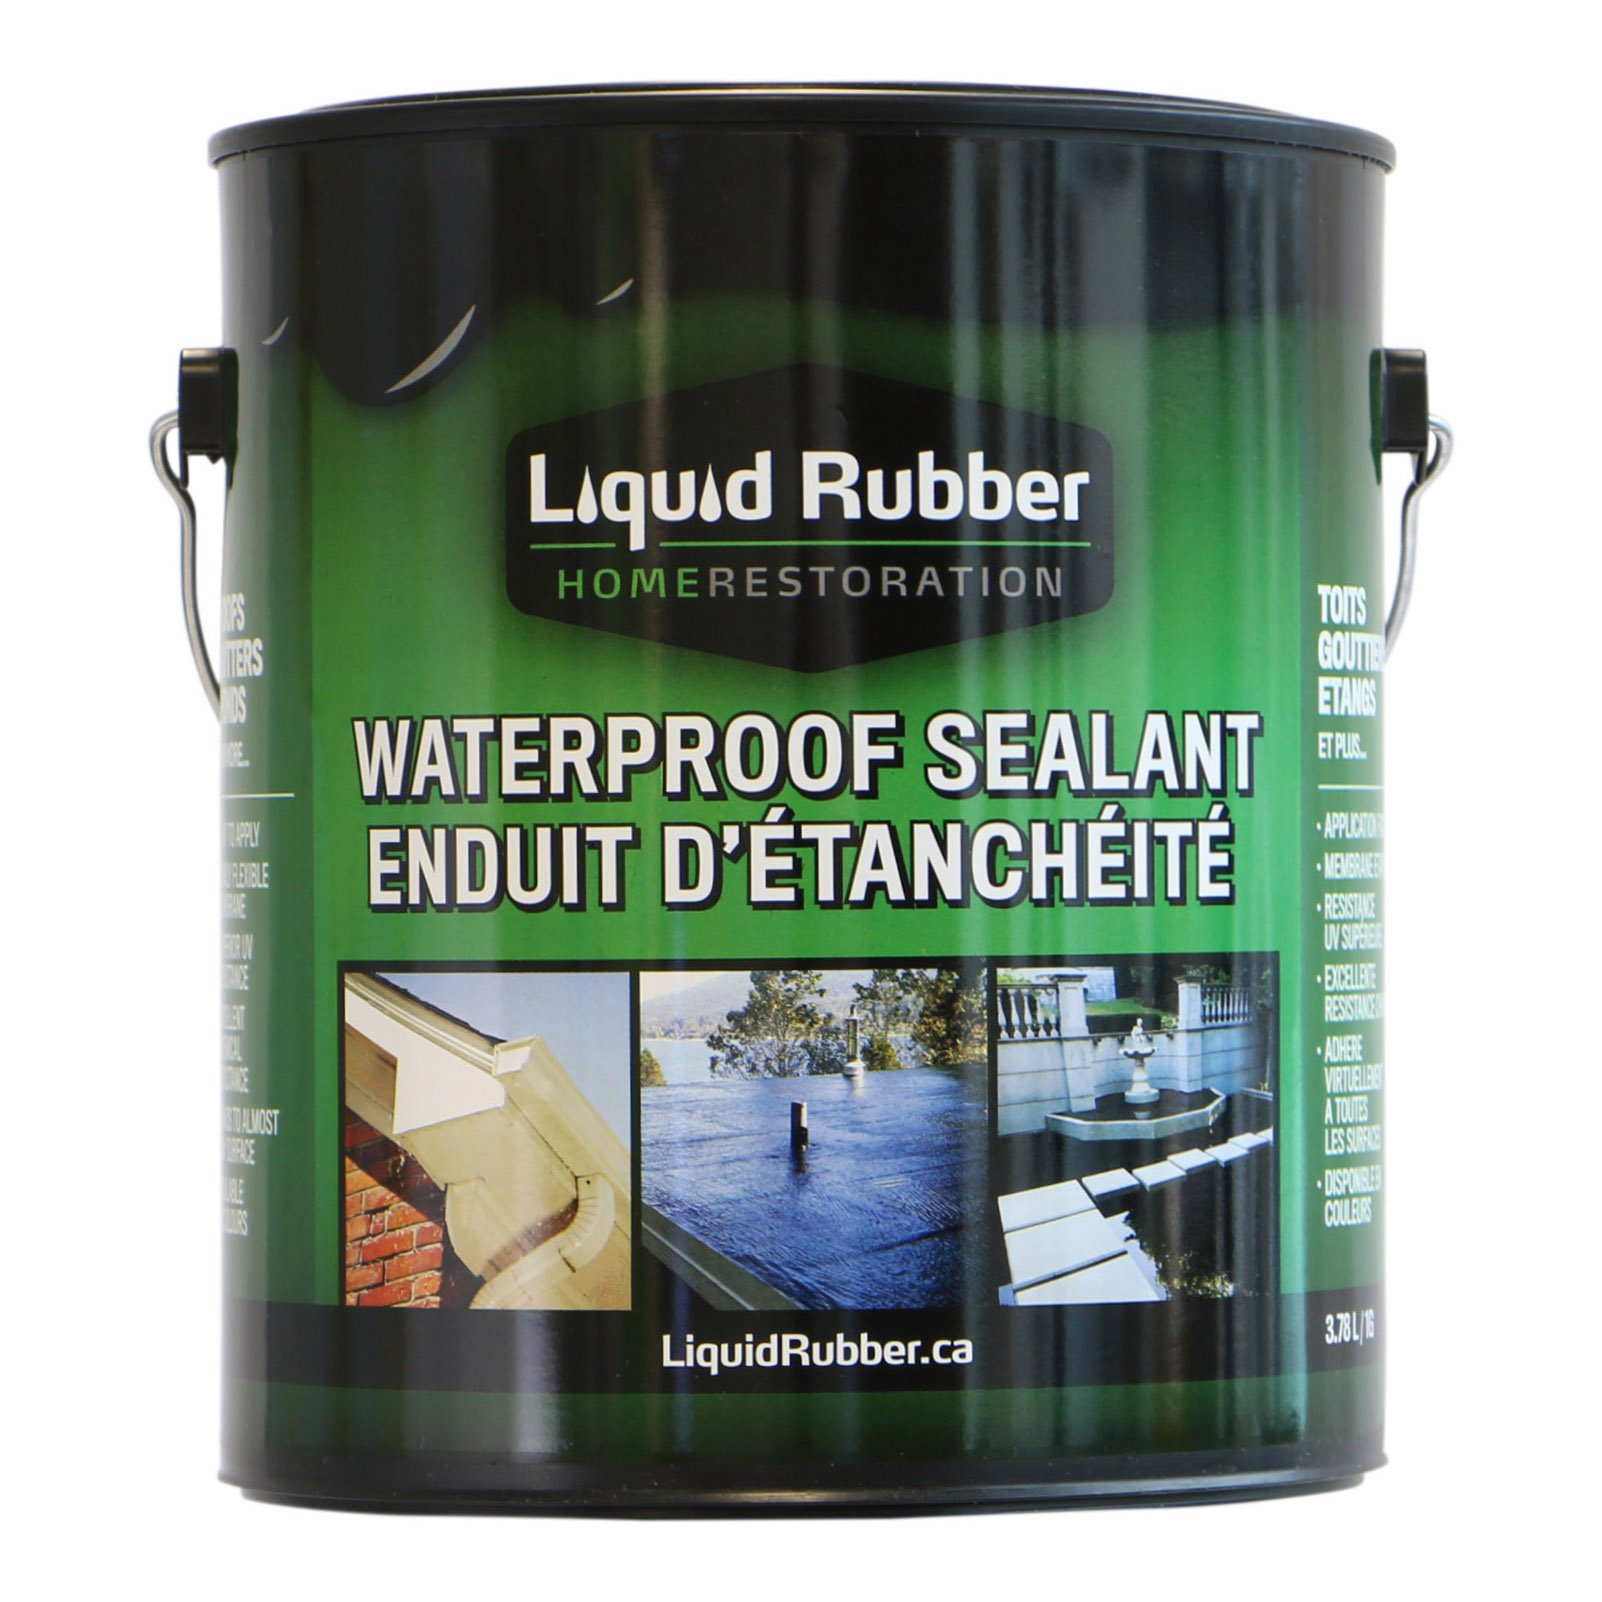 Liquid Rubber Waterproof Sealant/Coating - 1 Gallon - Original Black - Environmentally Friendly - Water Based - No Solvents, VOC's or Harmful Odors - Easy to Apply - No Mixing - TOP SELLER